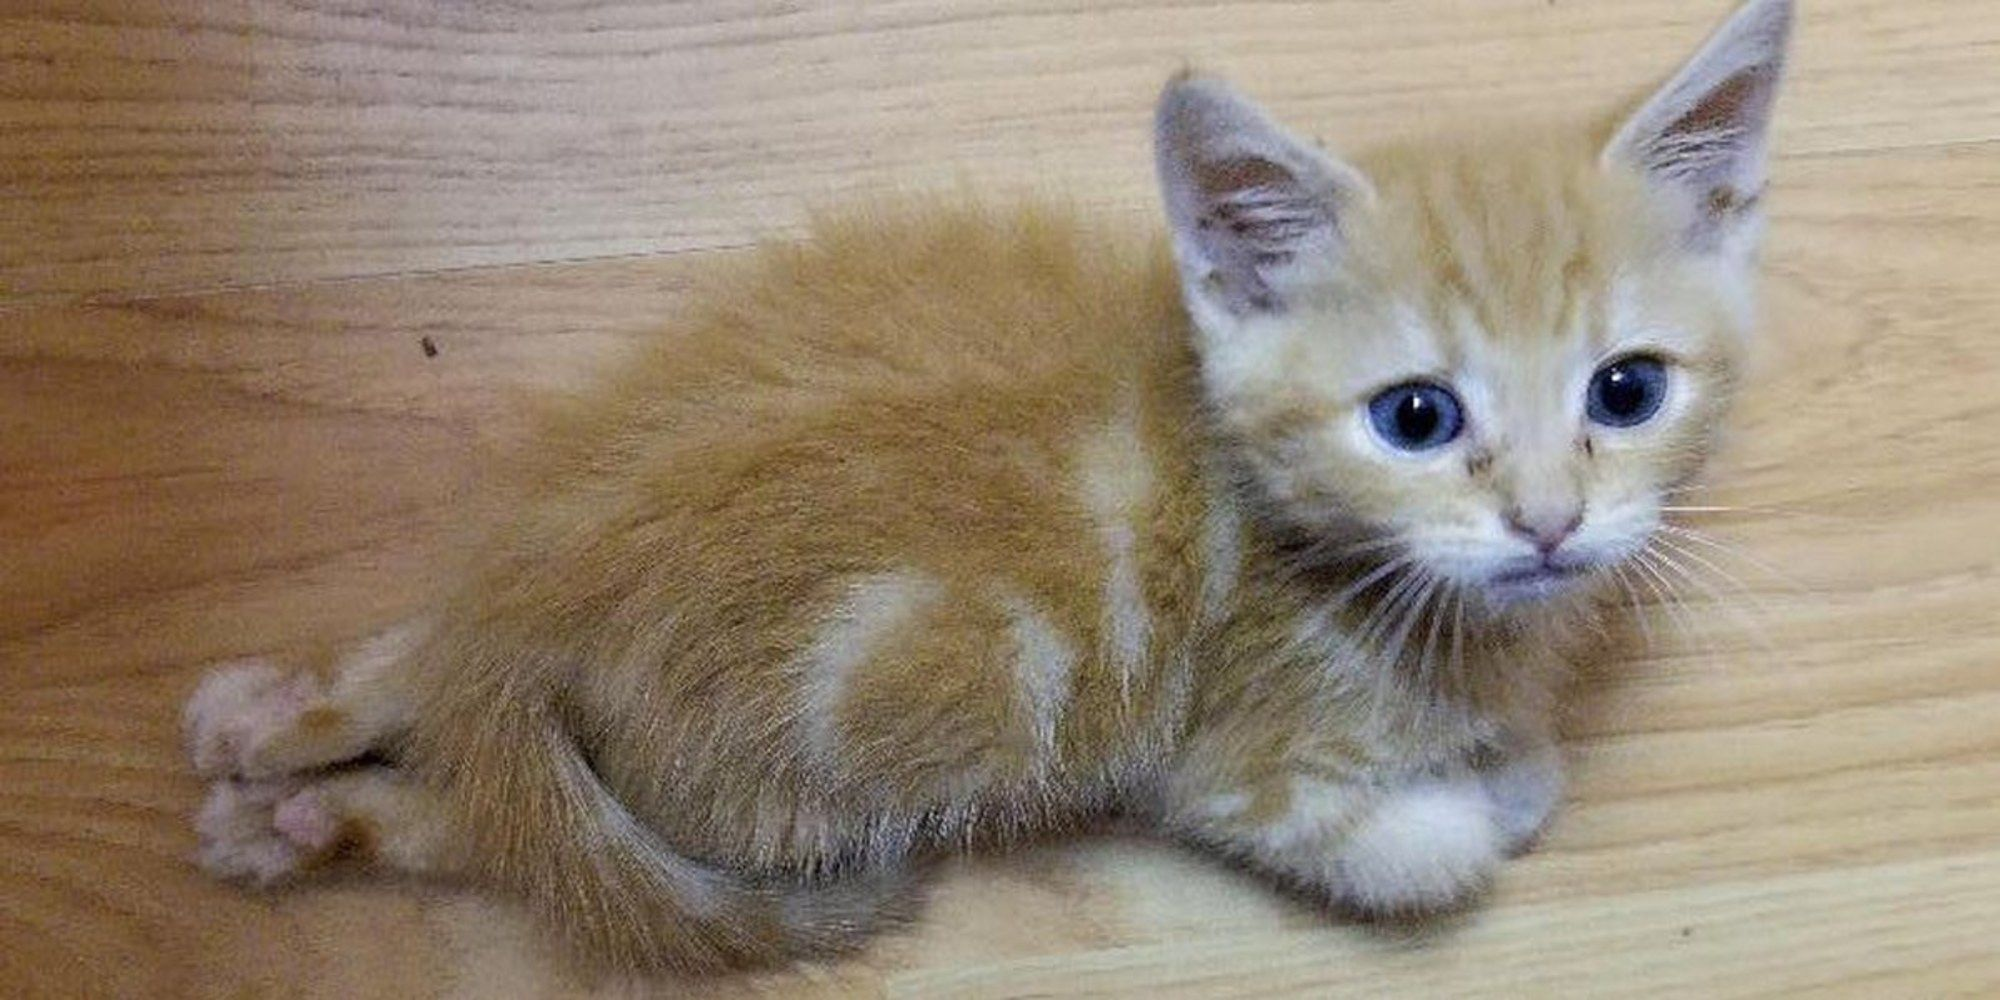 A Tiny Ginger Kitten Had A Rough Start To Life Despite Being Partially Paralyzed In His Back Legs Nothing Can Sl Kitten Cute Animal Pictures Cats And Kittens